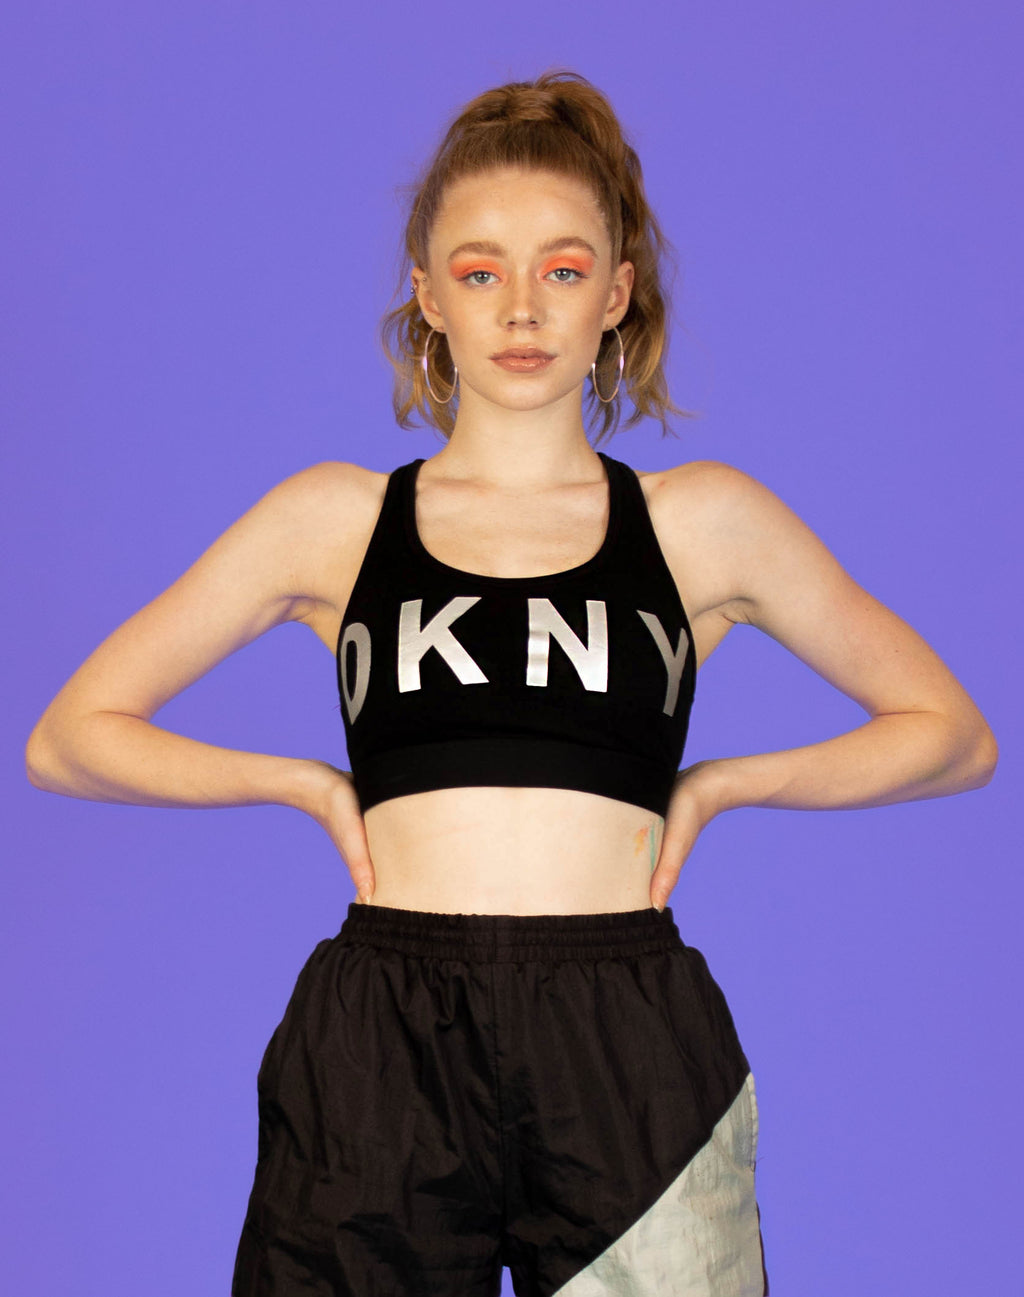 DKNY BLACK AND SILVER SPORTS BRA